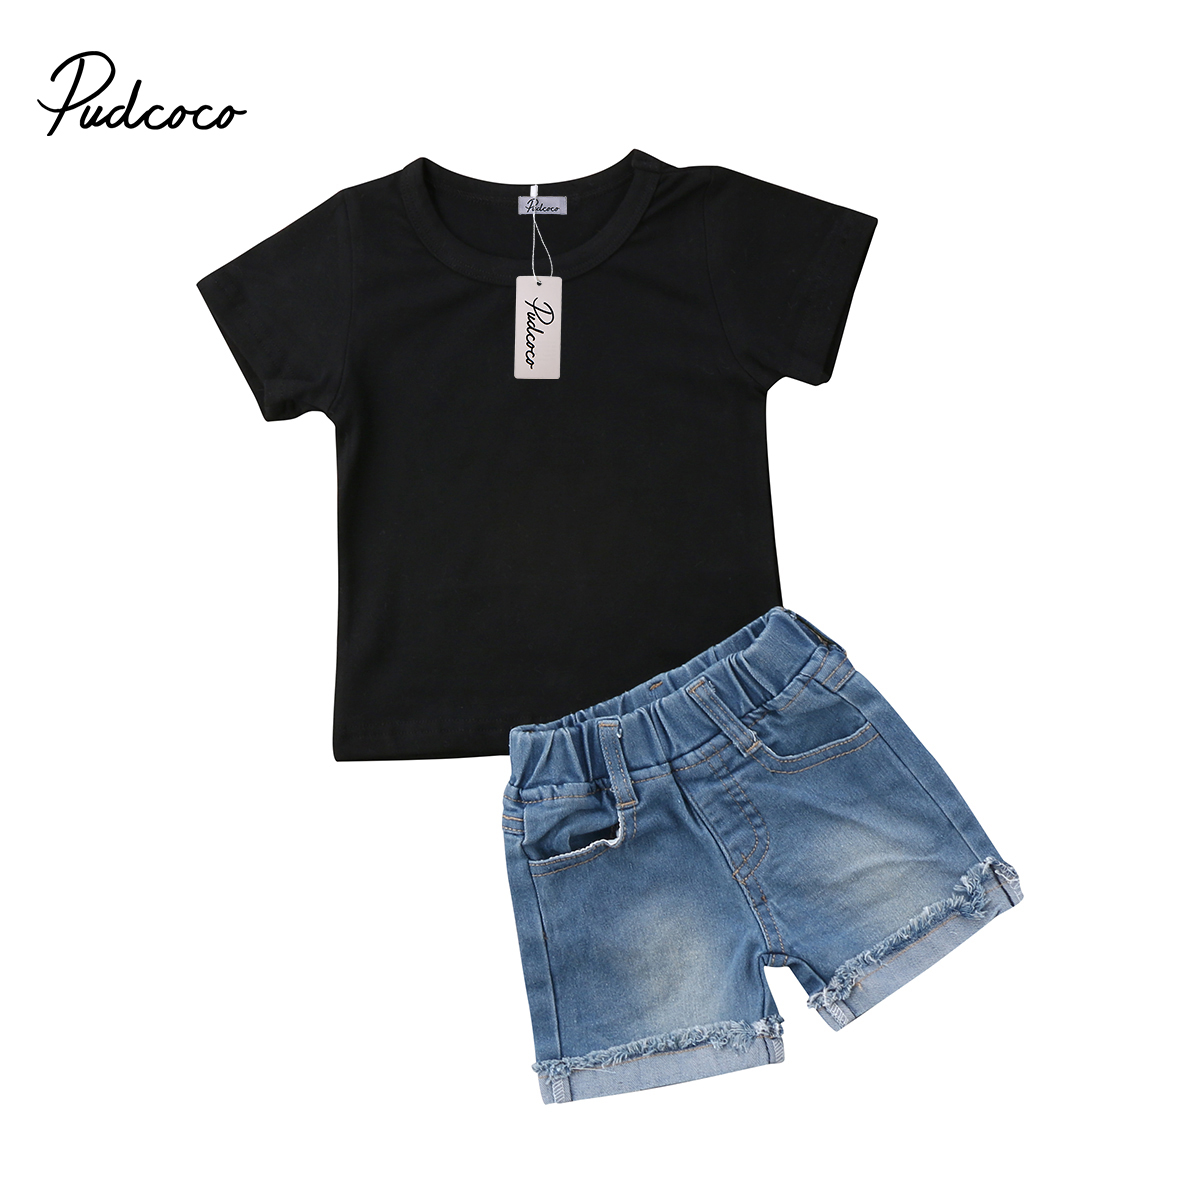 2018 Brand New Toddler Infant Casual Kids Baby Boys Short Sleeve Tops T-Shirt+Denim Shorts Jeans Children Summer Clothing 1-6T top brand men baggy jeans denim loose washing jeans men hip hop jeans boys casual skateboard relaxed fit jeans mens harem pants